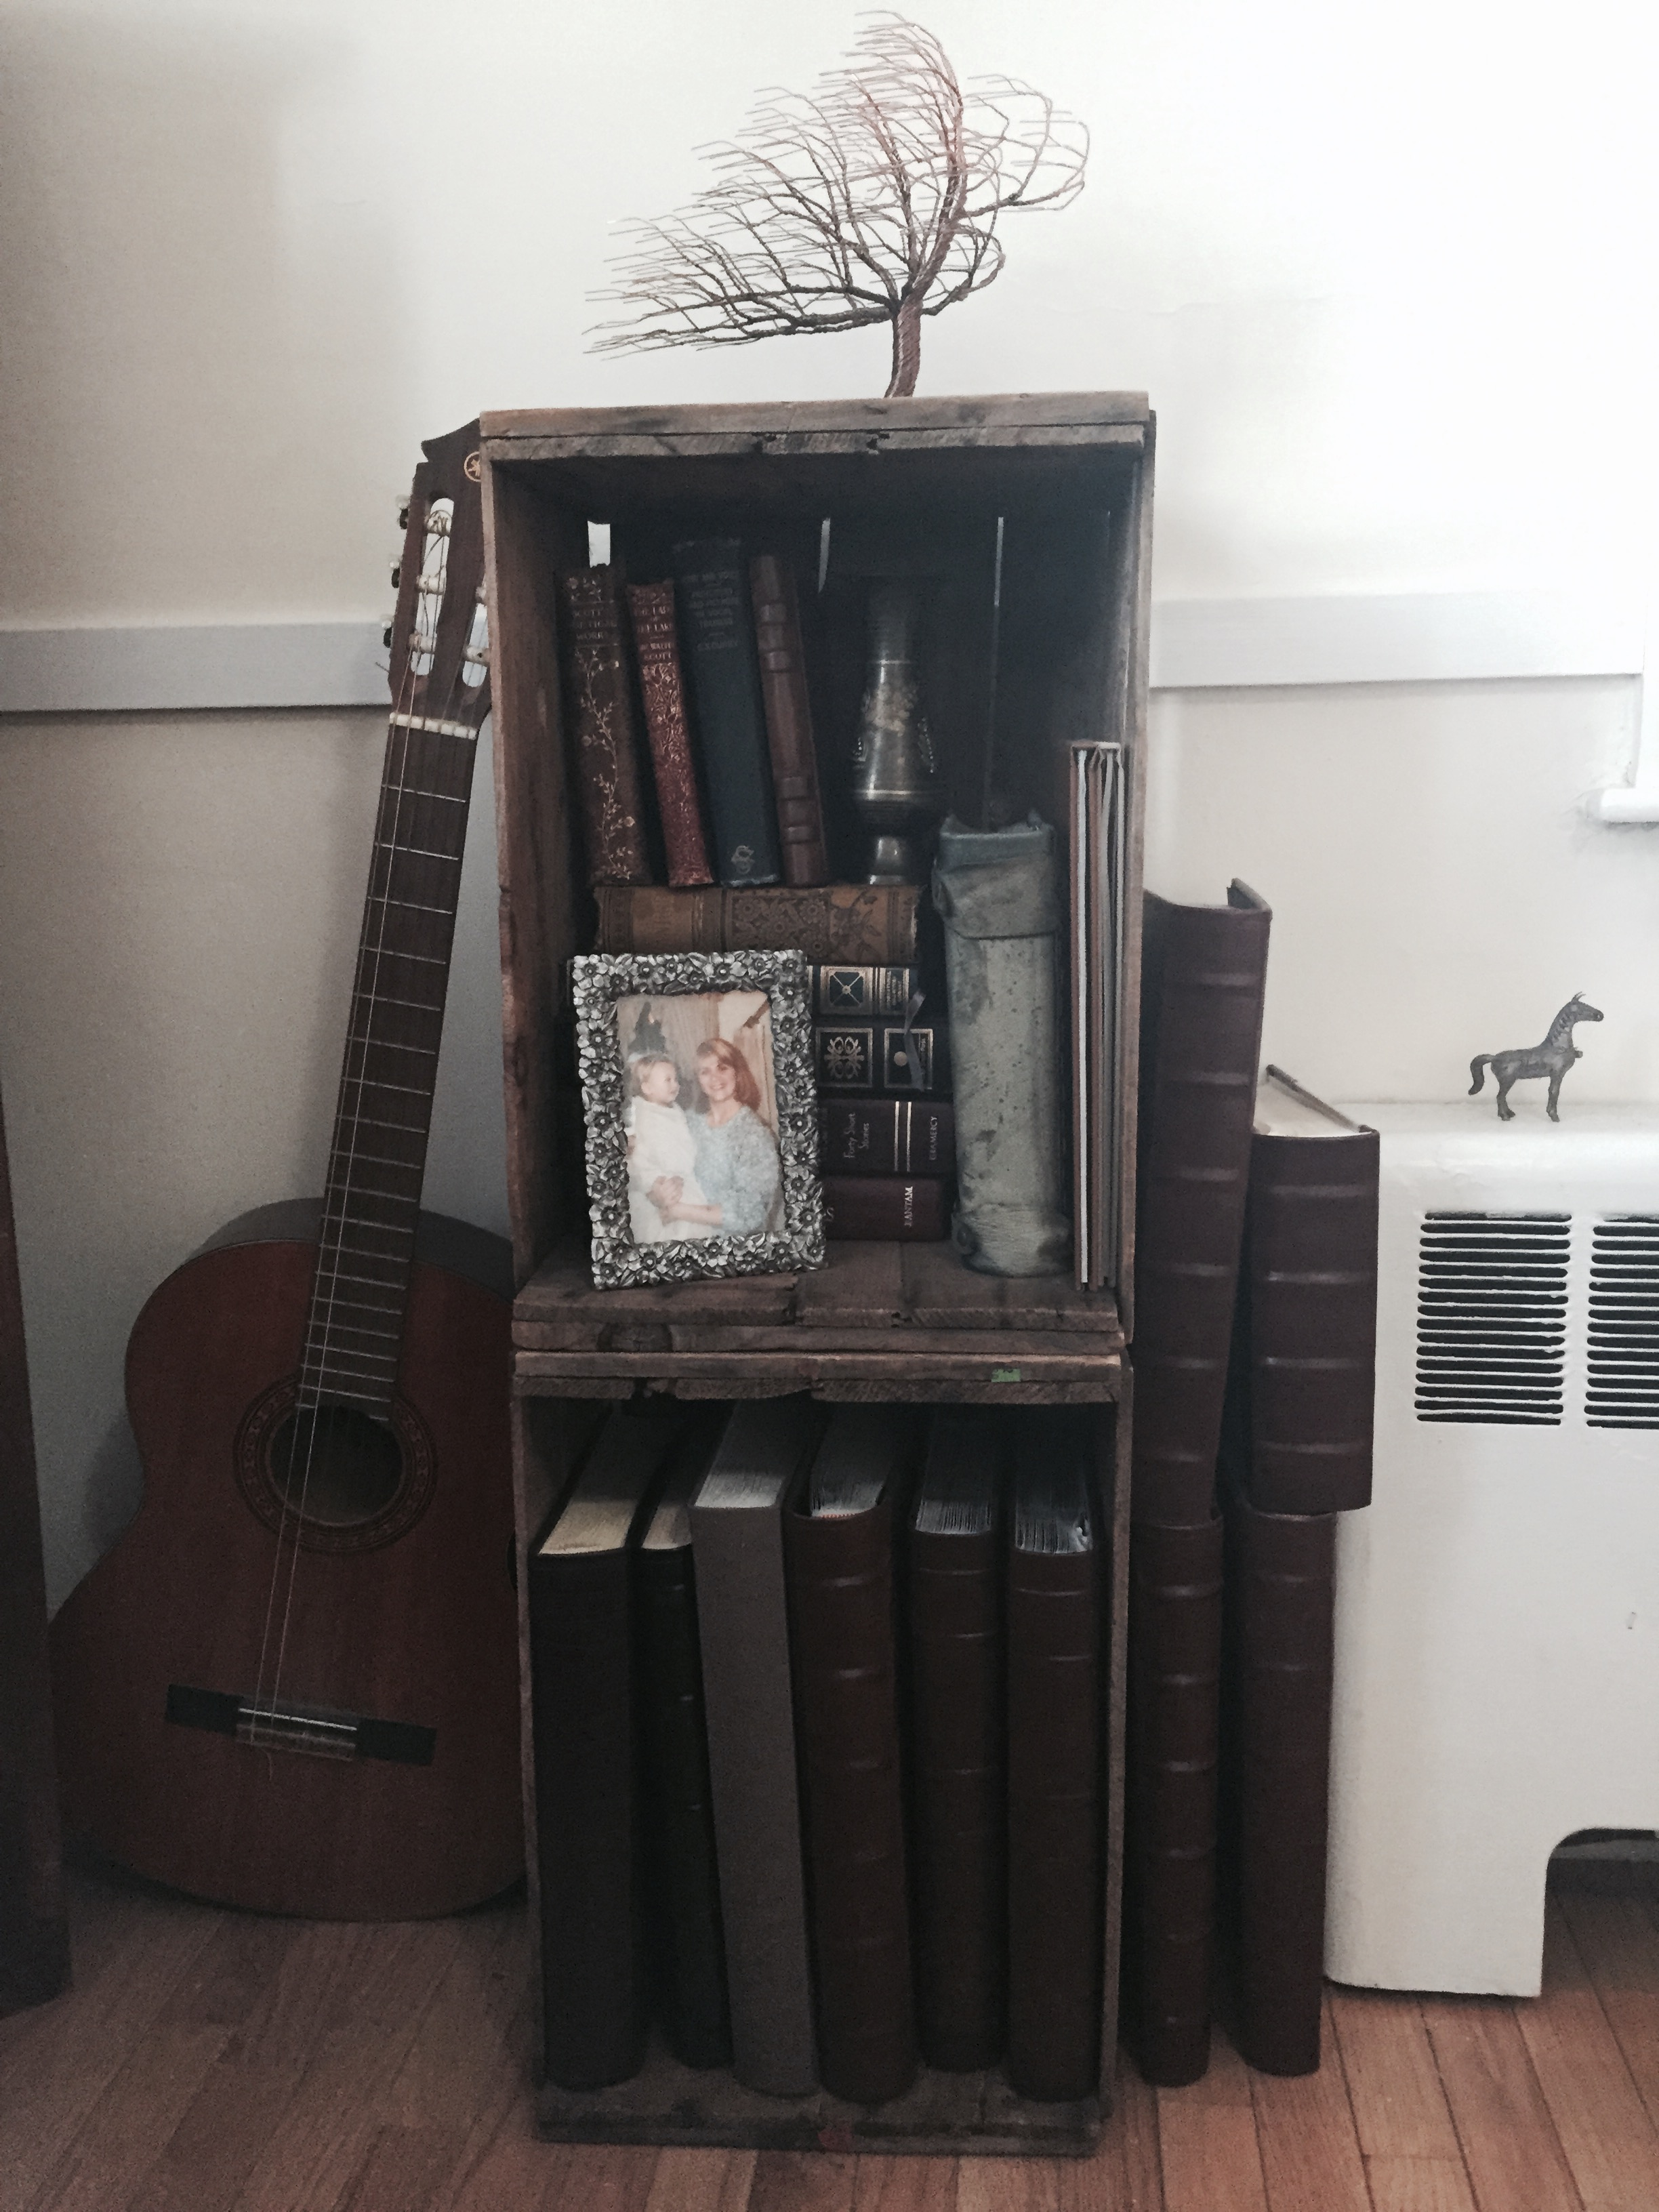 We used these apple crates at our wedding and now they hold our photo books full of memories and faces we love.